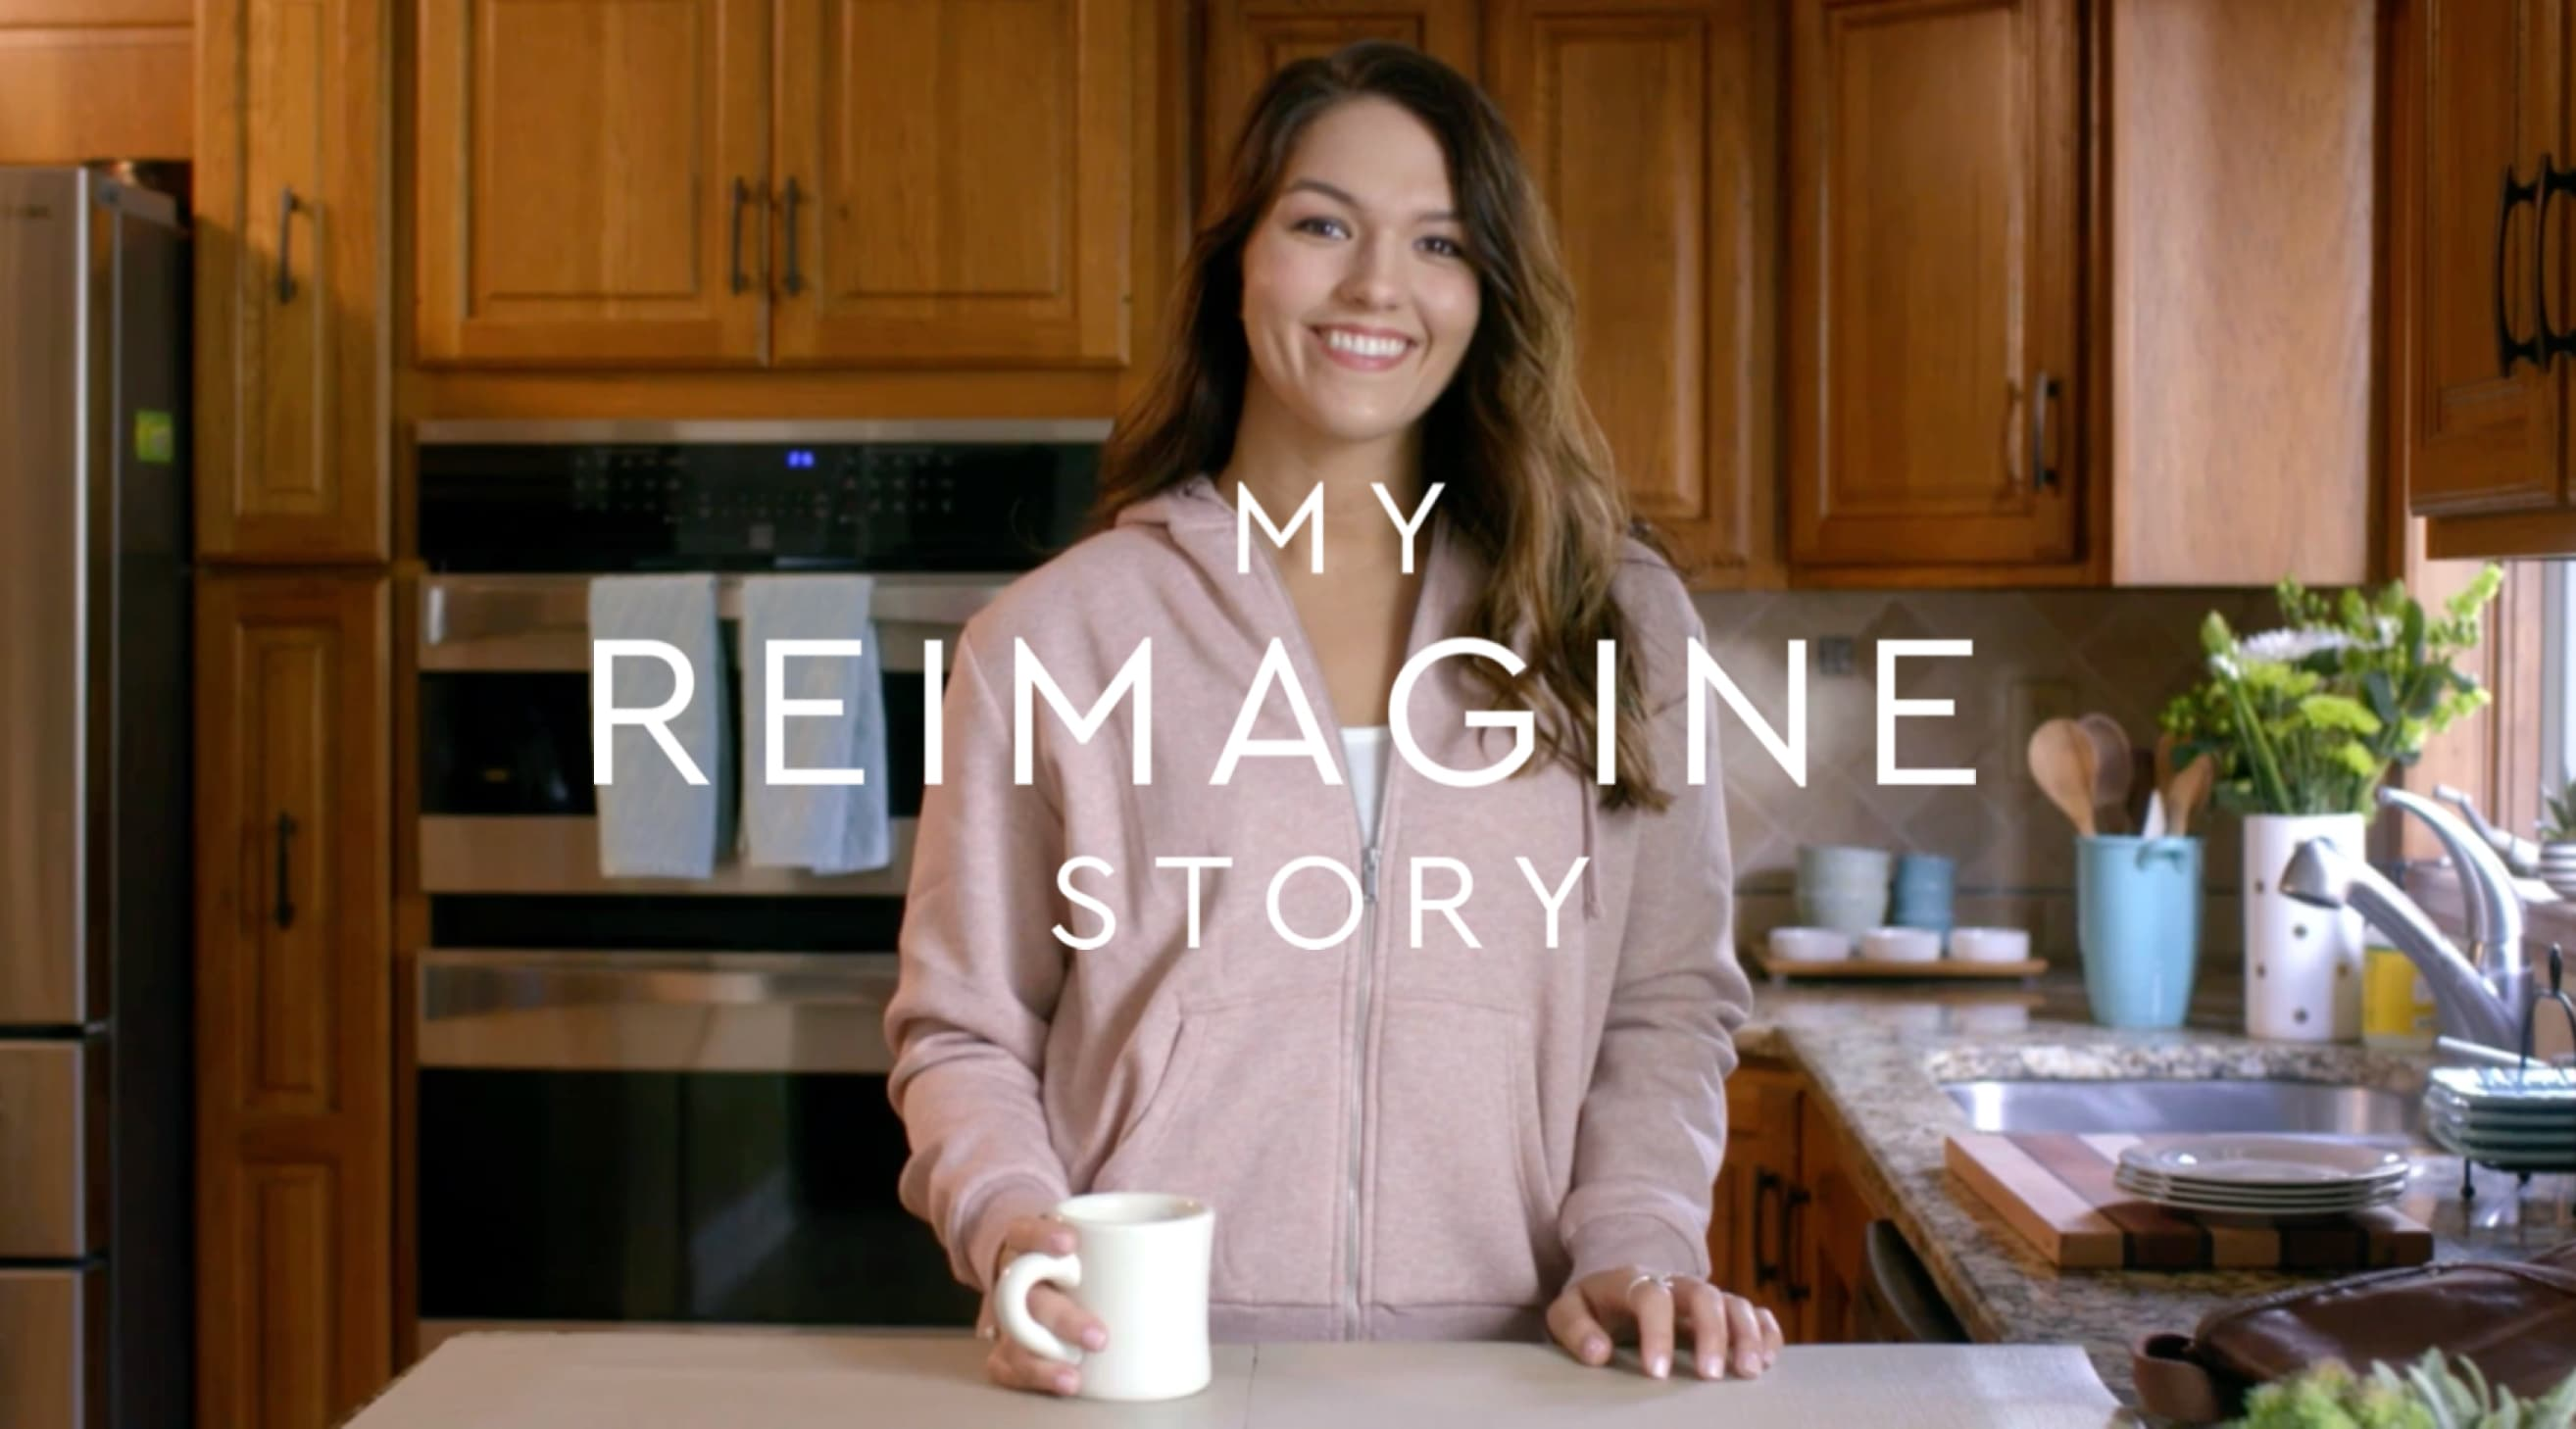 A real TAKHZYRO® patient: Lexie's Reimagine Story